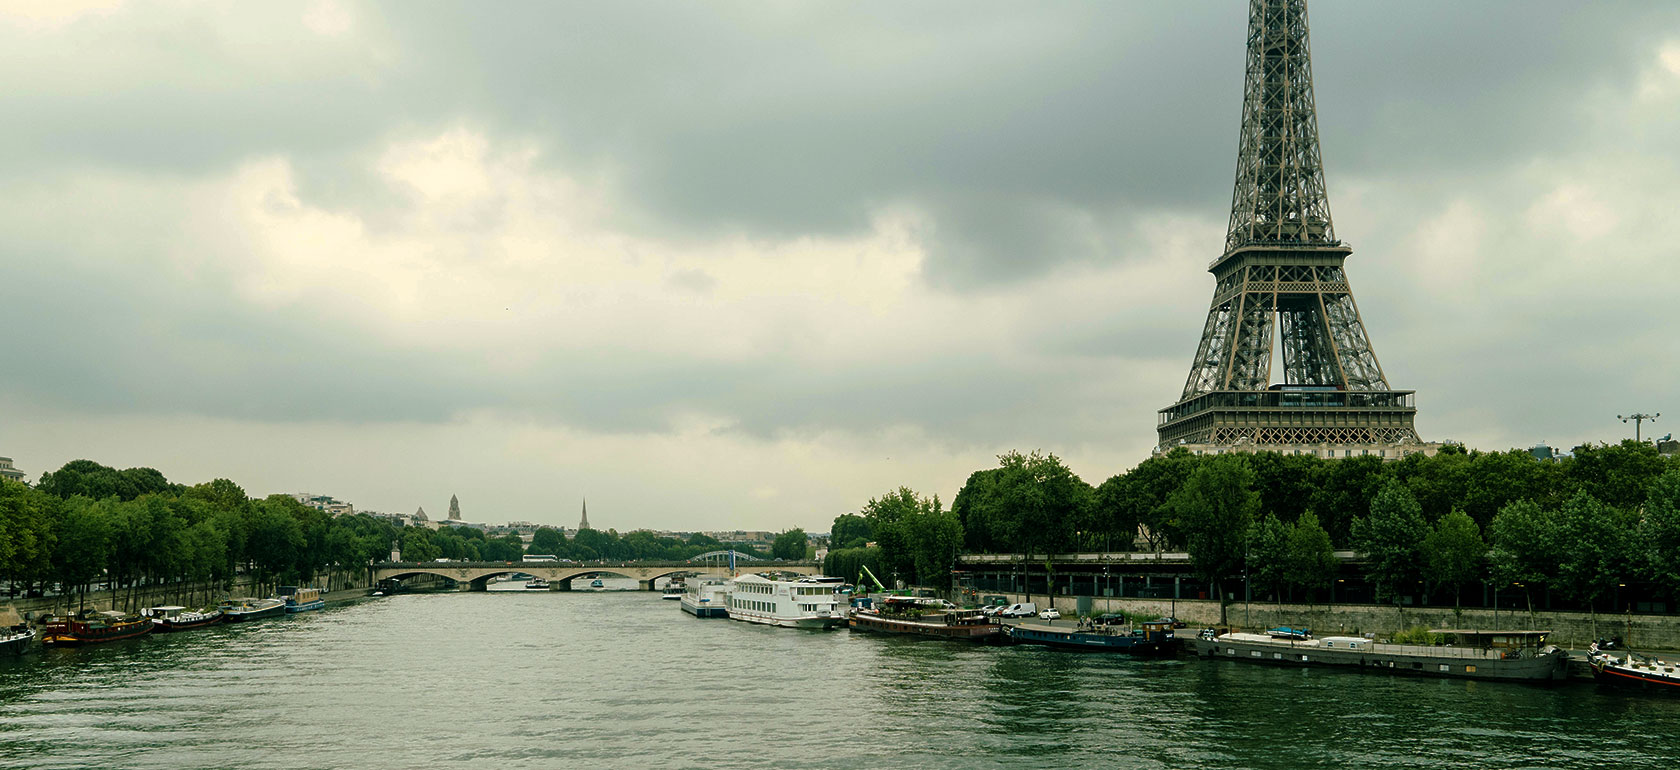 Parijs City Tour & Seine Rivier Cruise